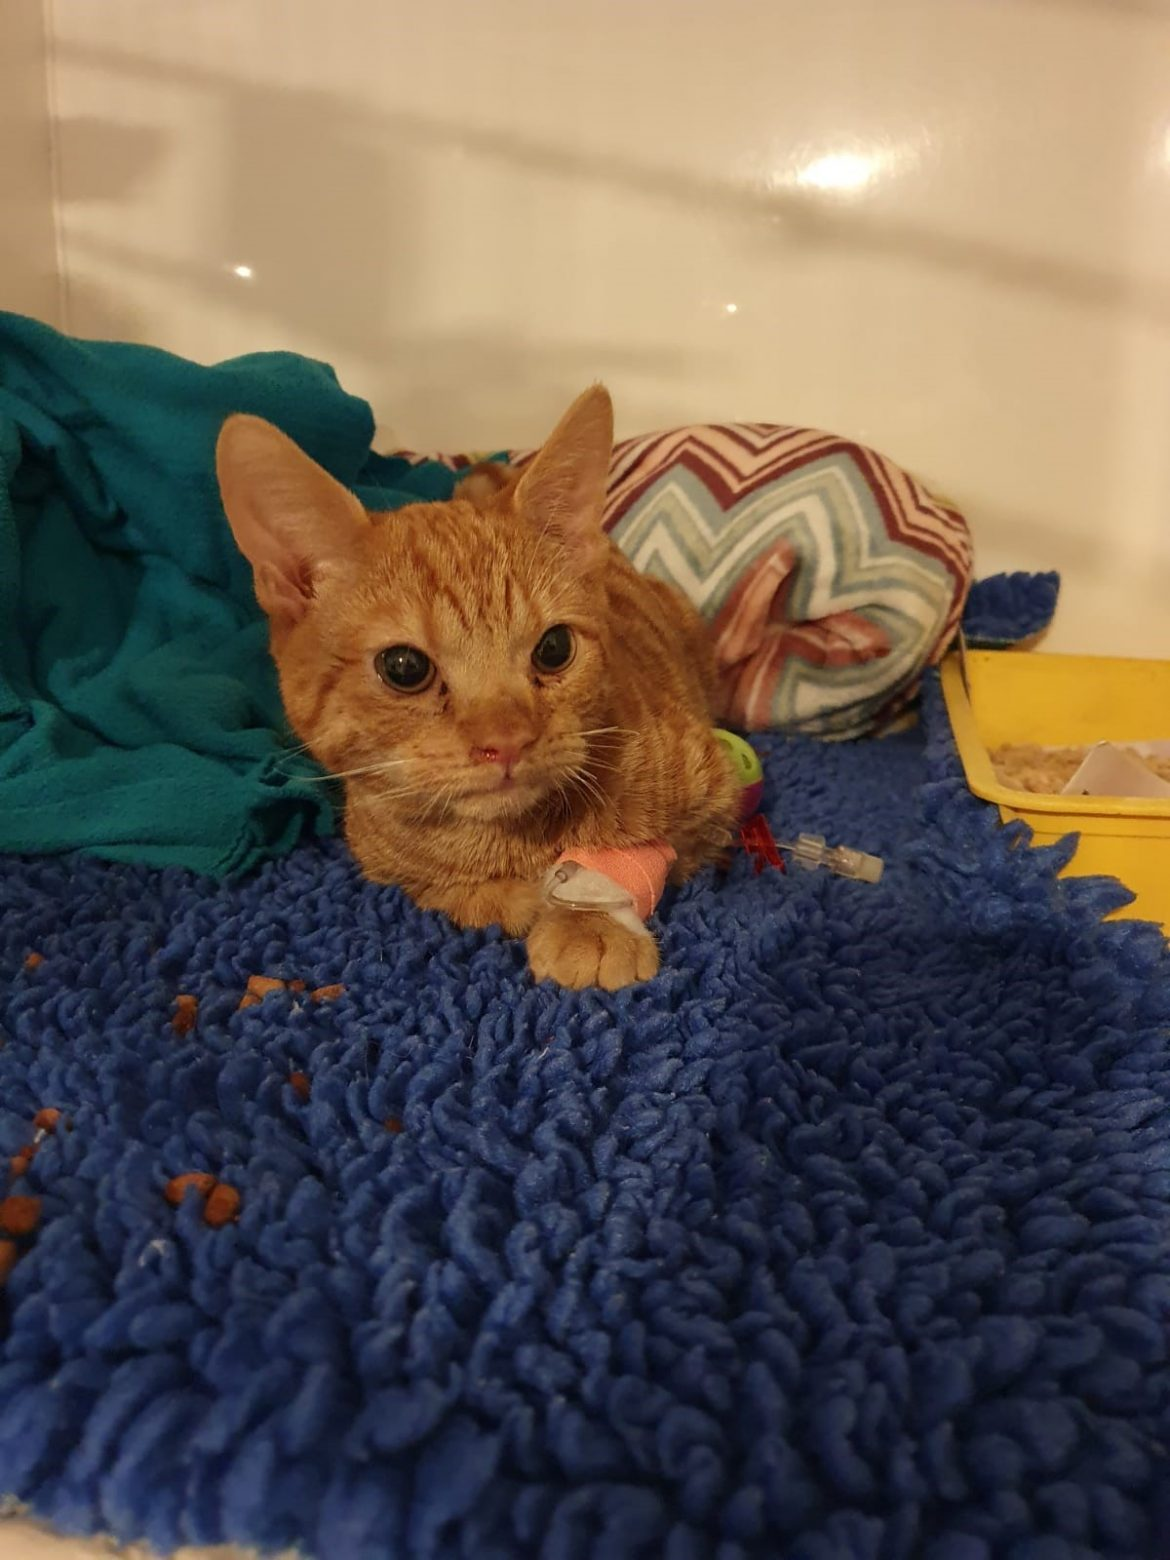 Kitten Found Loving new Home After Needing Emergency Care for Broken Bones and Fractured Ribs